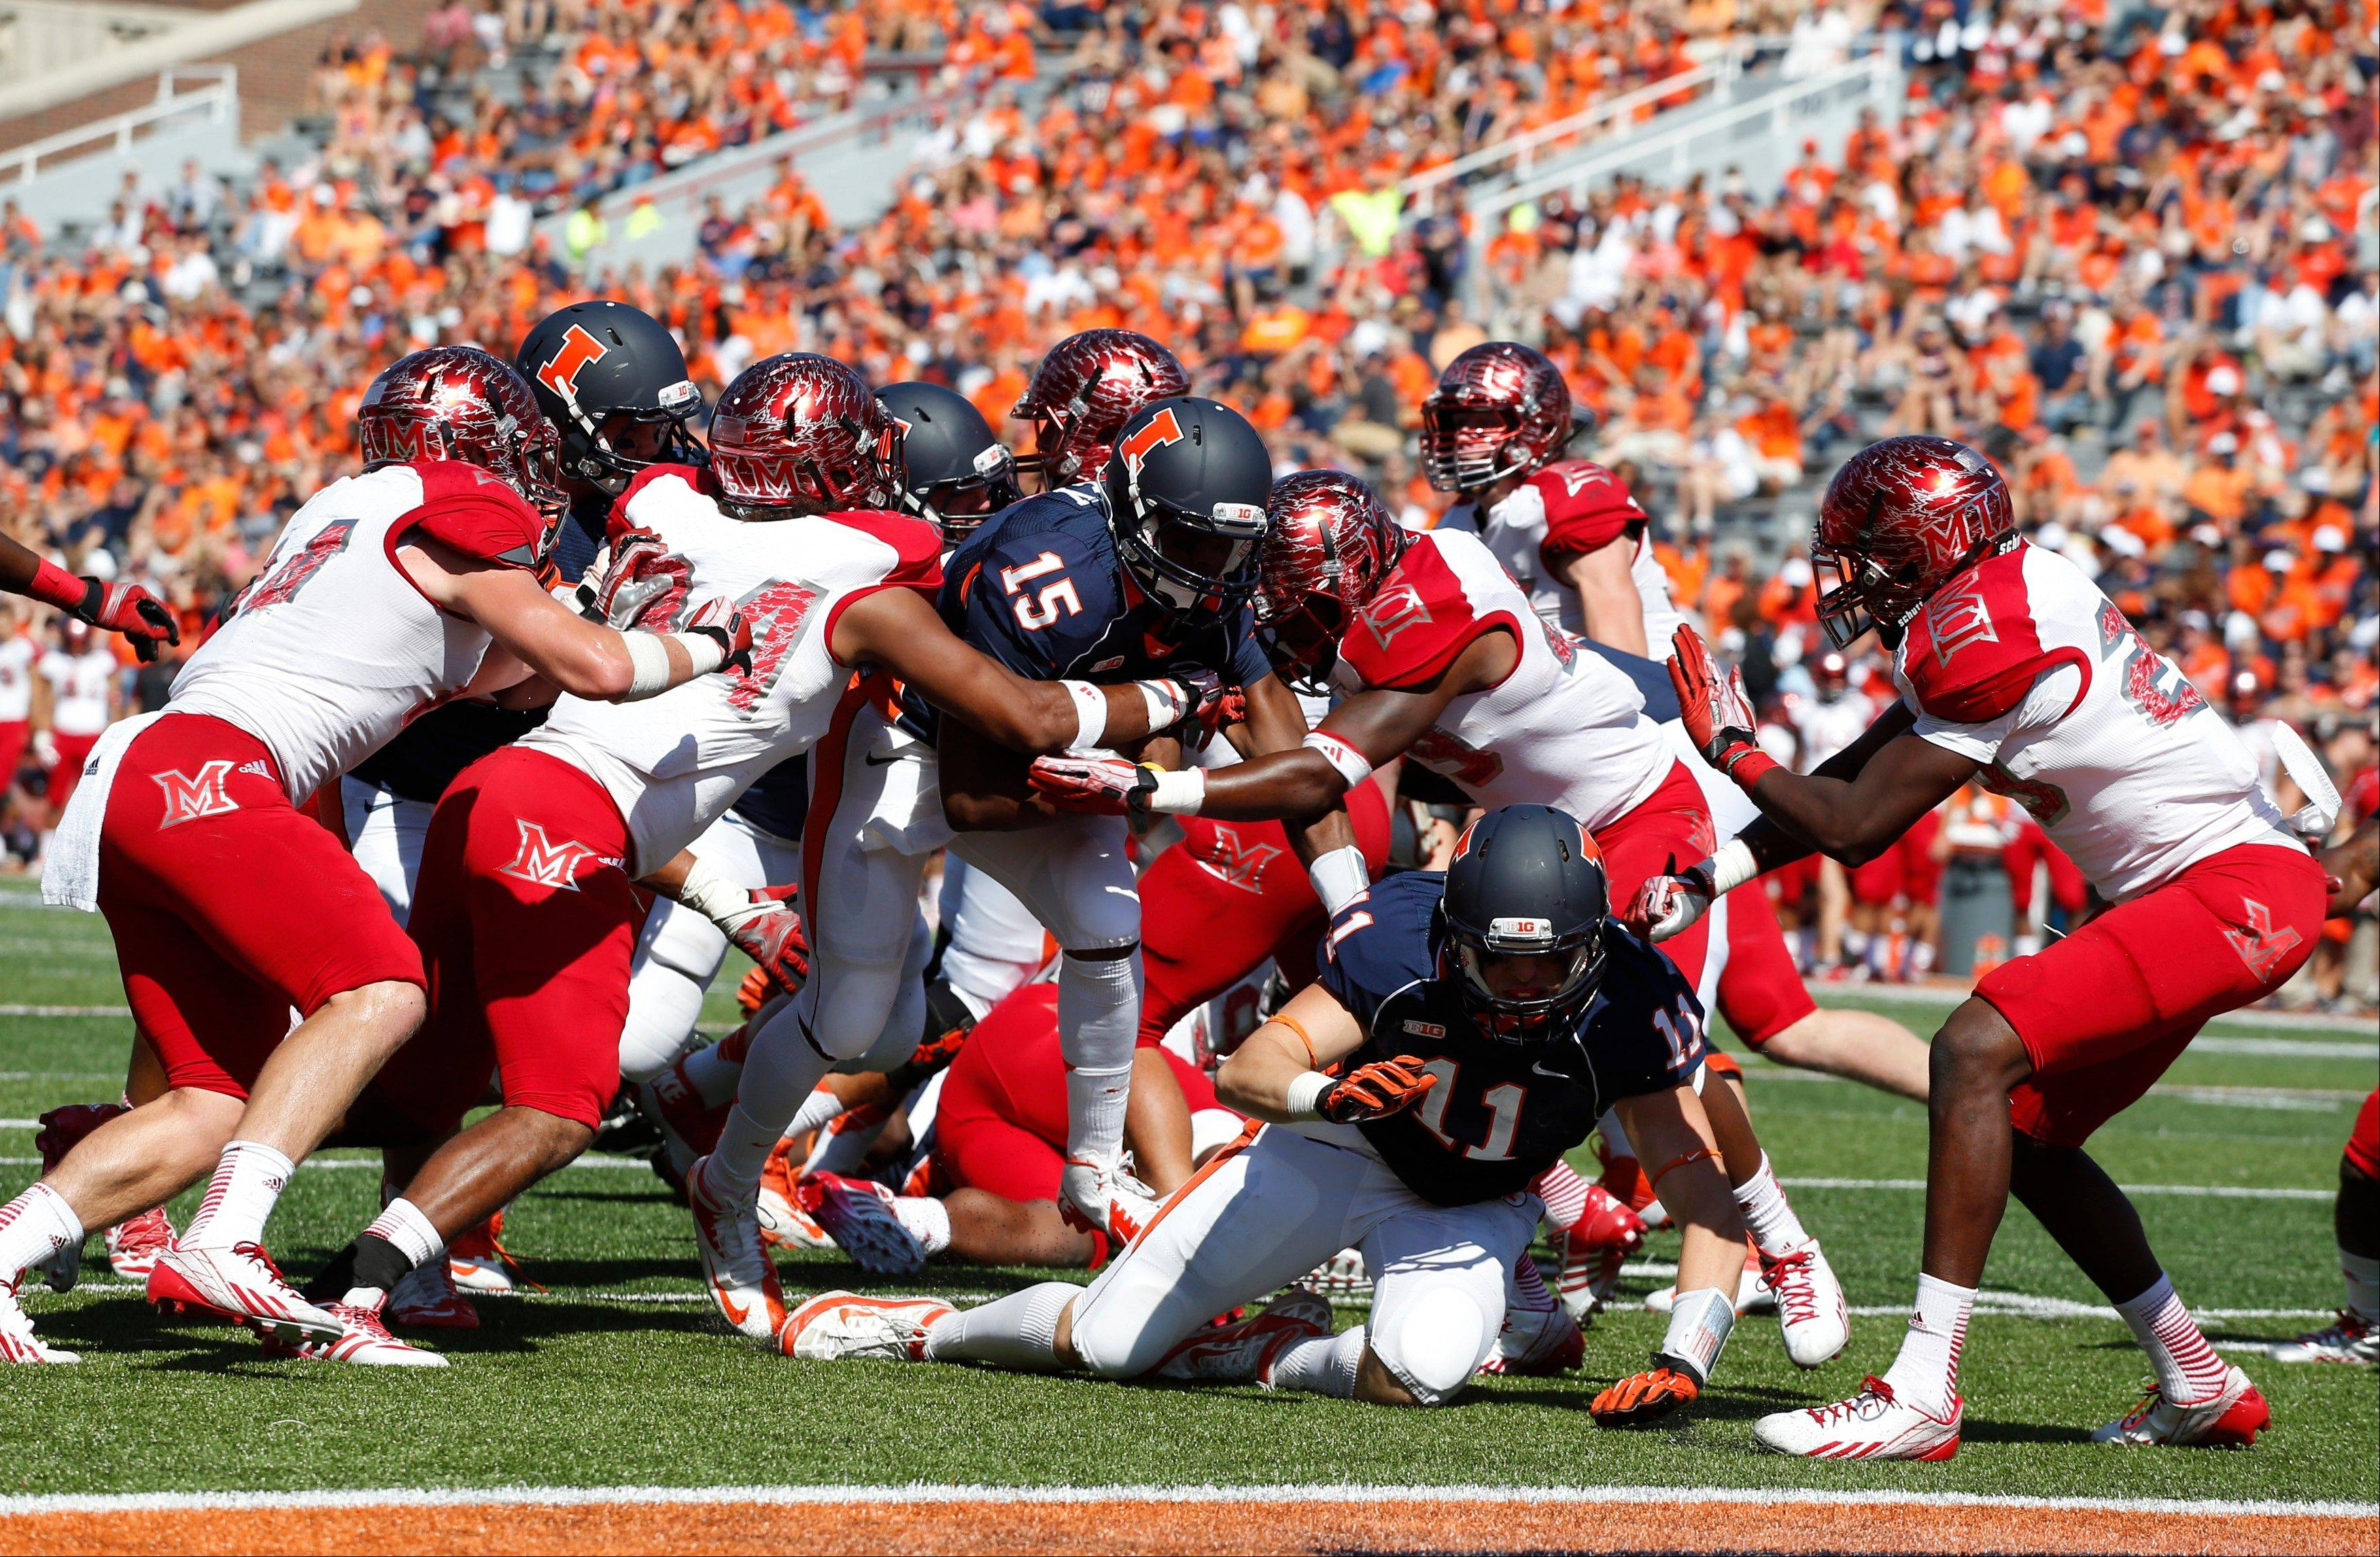 Illinois quarterback Aaron Bailey goes in for a touchdown against Miami (Ohio) during the second half of Saturday�s game at Memorial Stadium in Champaign.